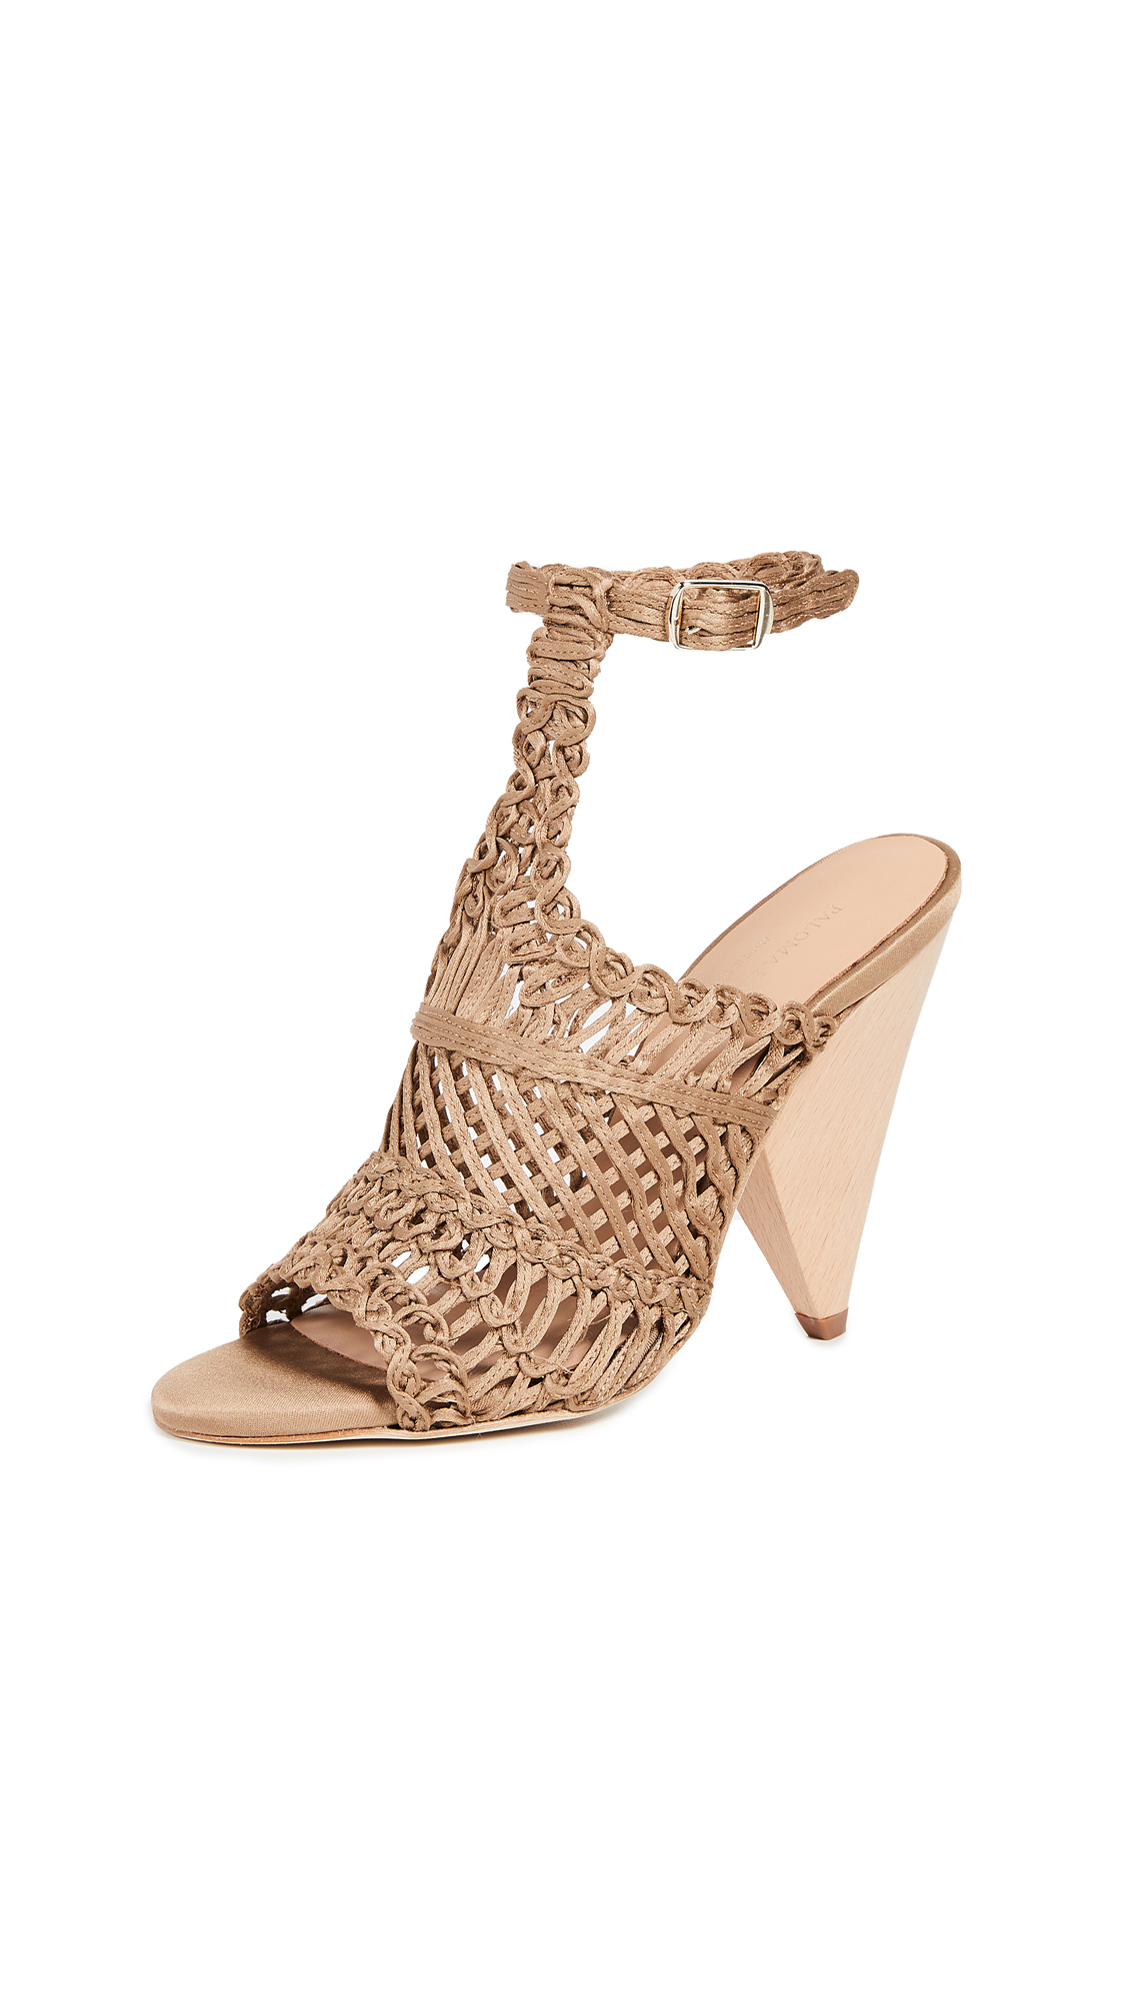 Paloma Barcelo Beatrice Sandals - Taupe